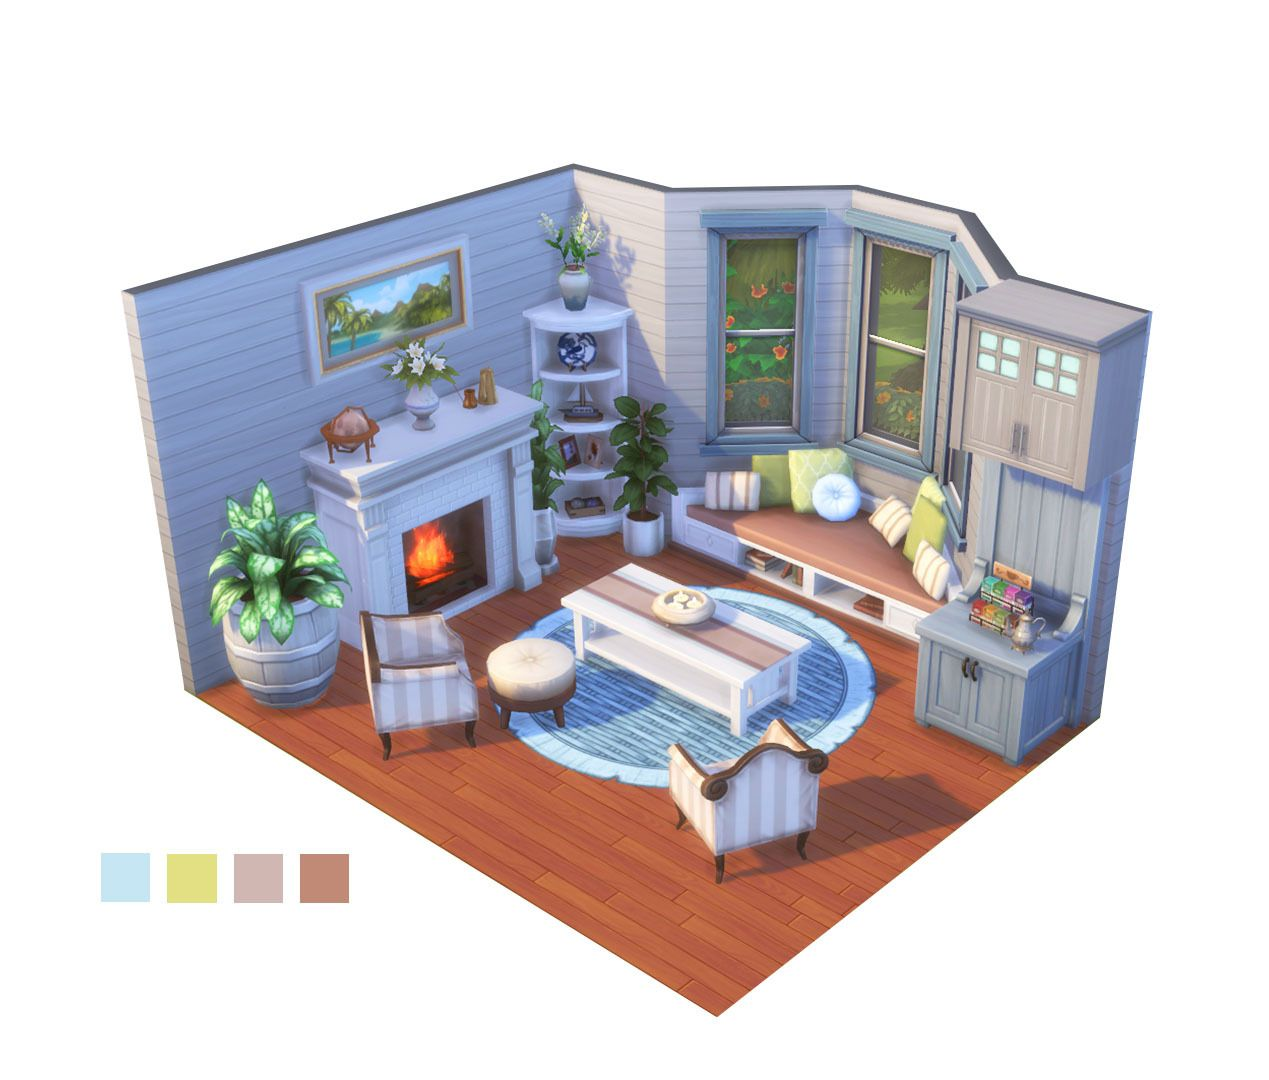 Pin By Berrydana On Komnaty Sims 4 Loft Sims 4 House Design Sims 4 House Building